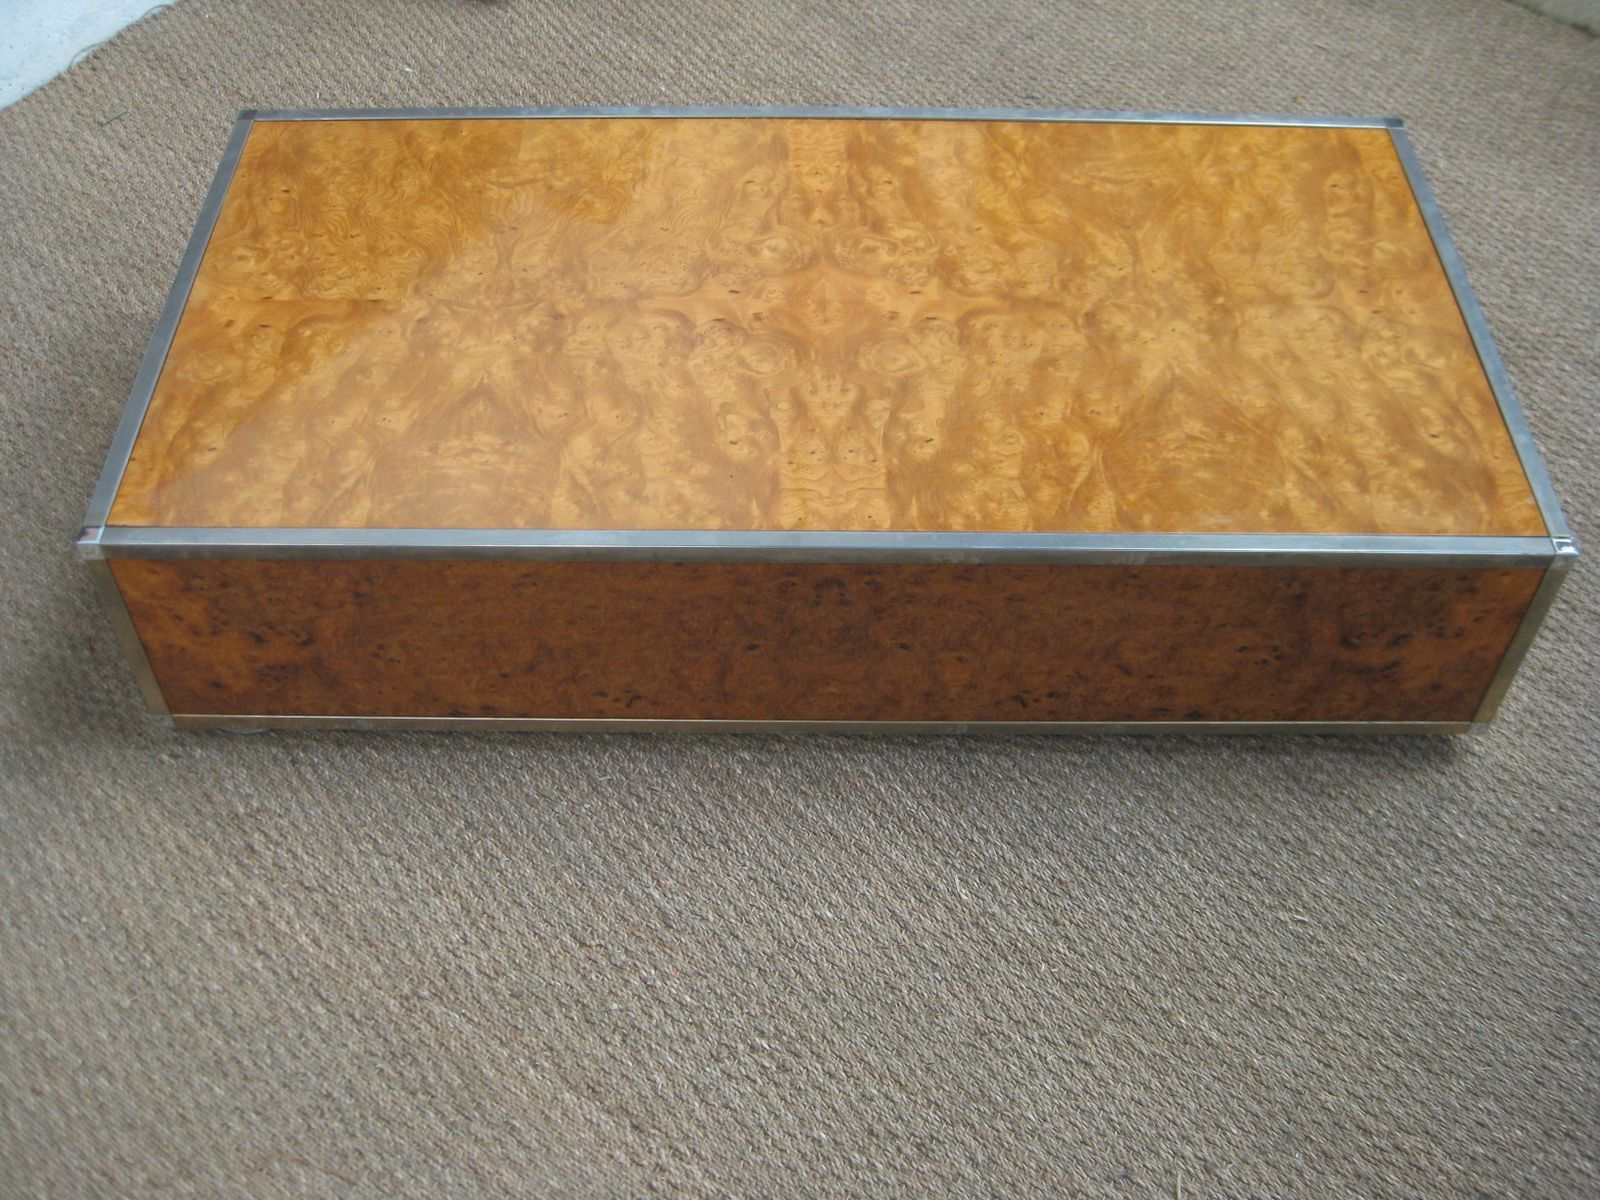 Vintage elm coffee table by willy rizzo for sale at pamono for Table willy rizzo